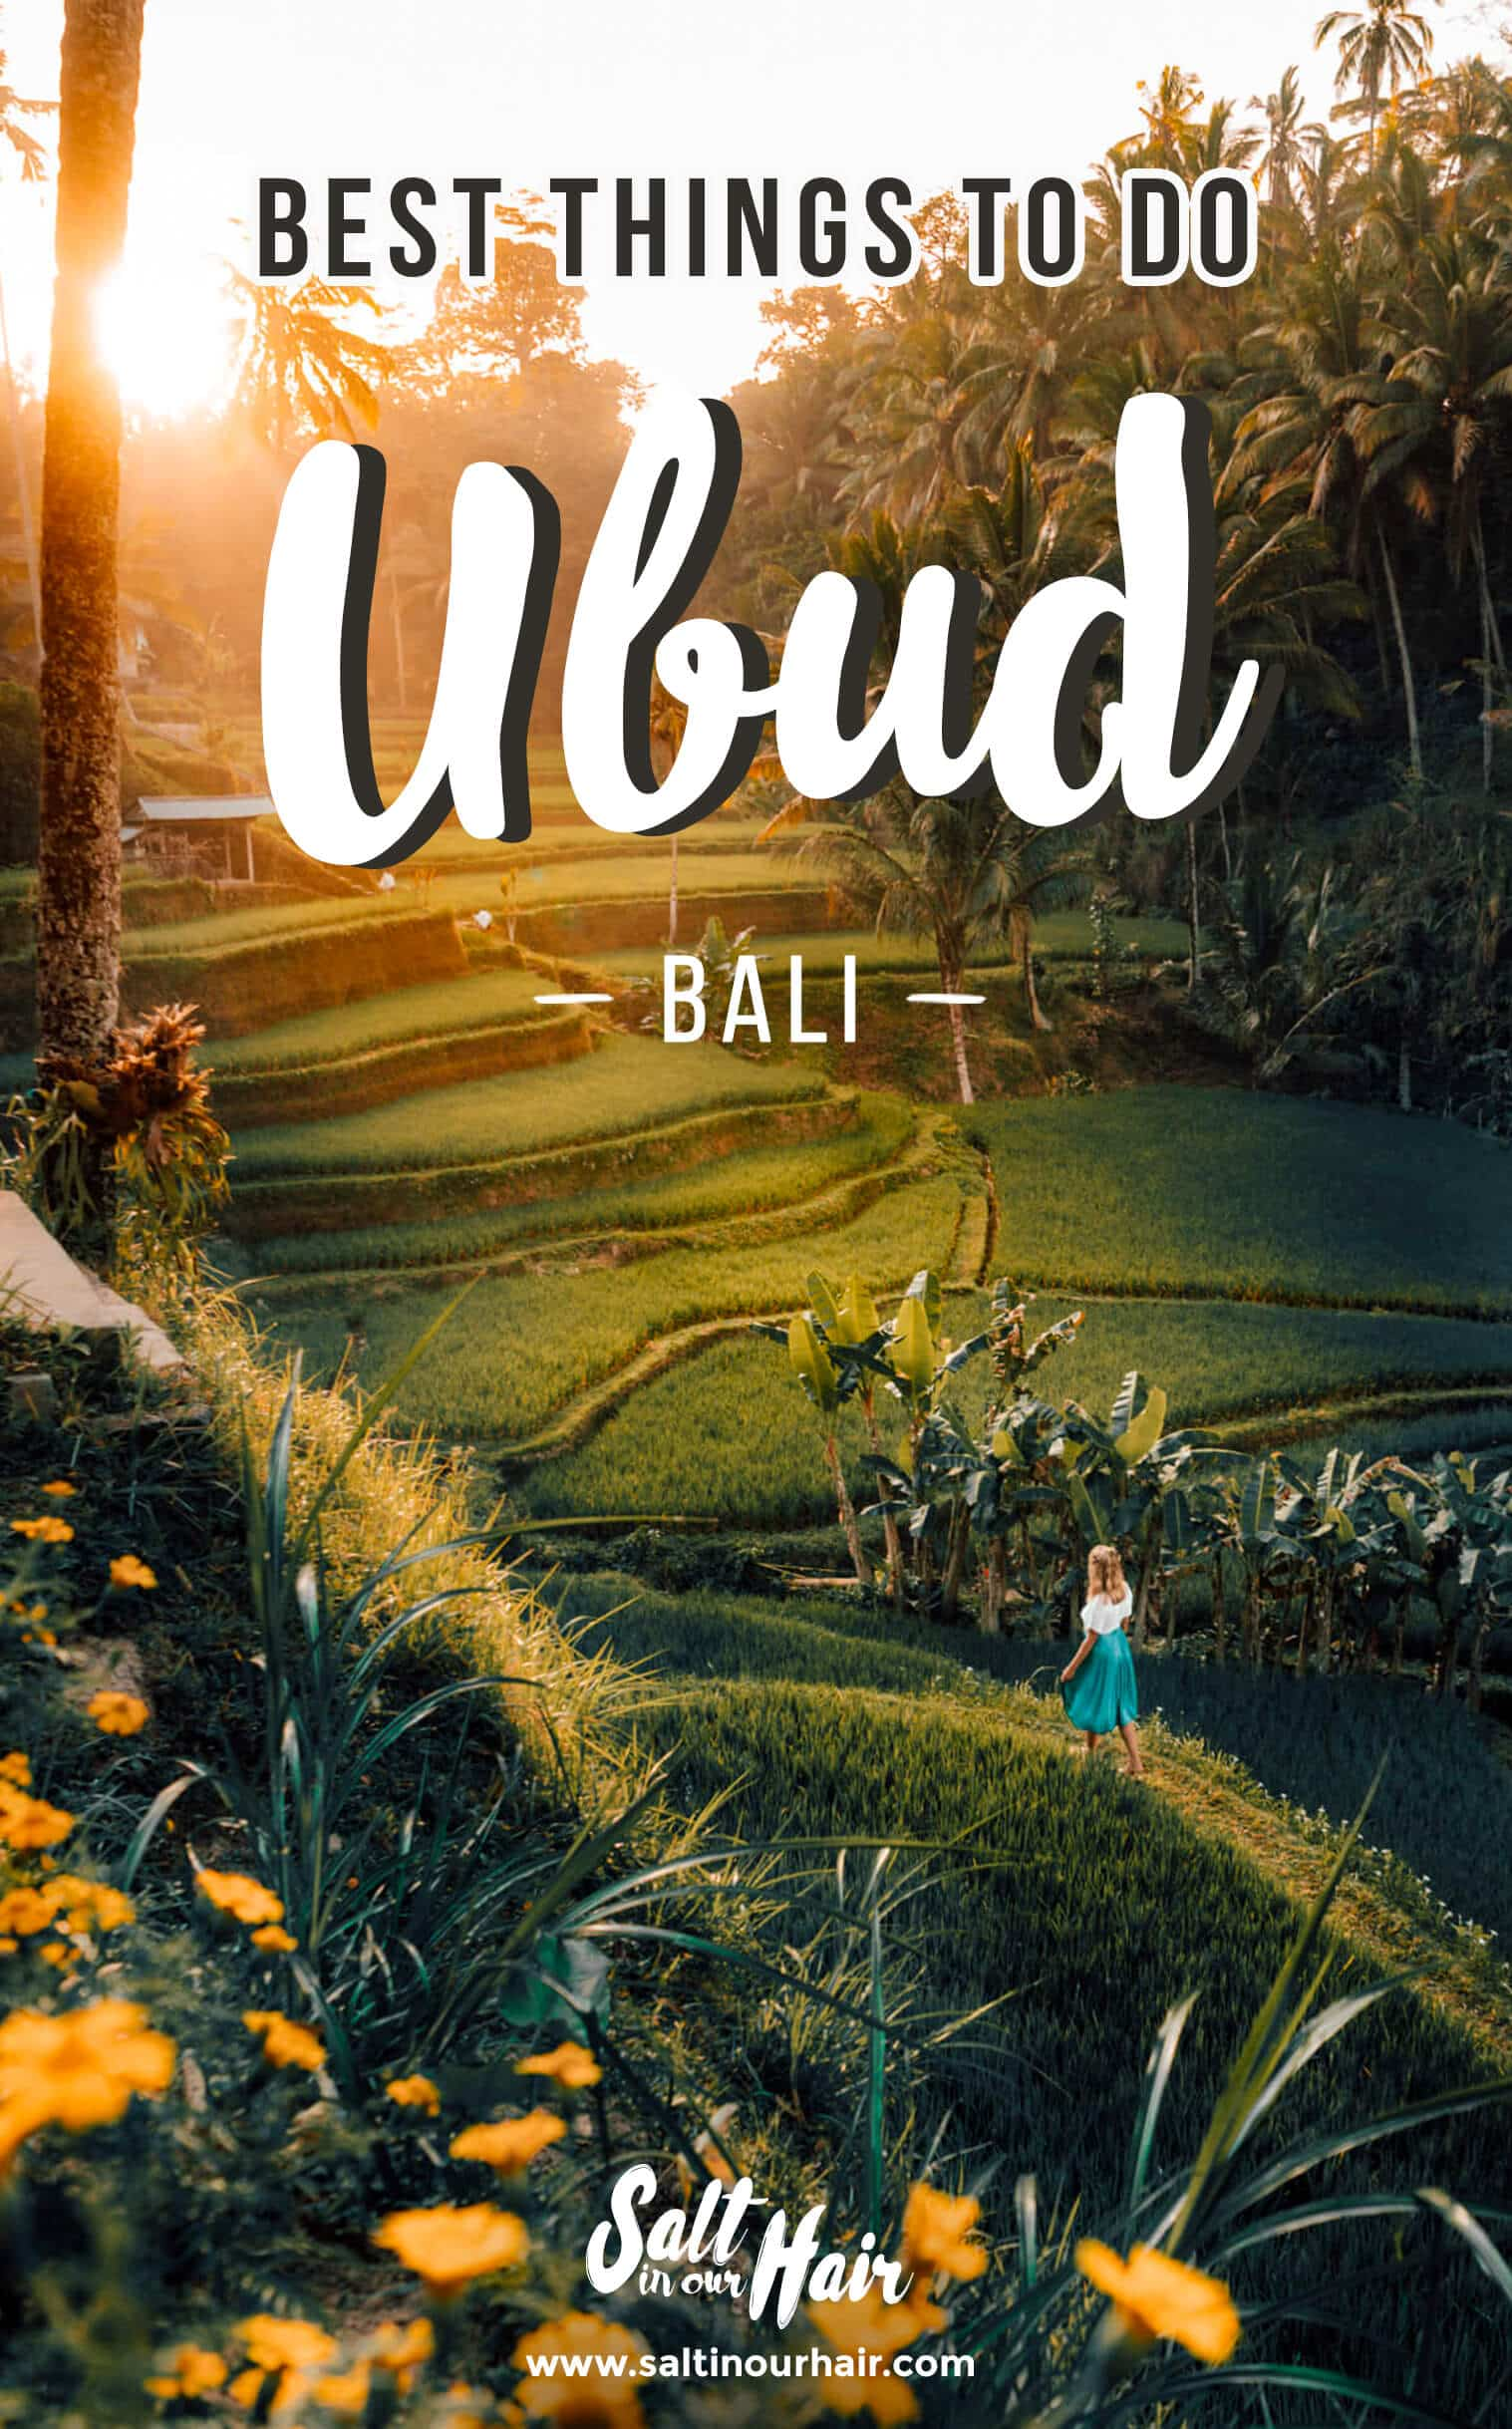 Do Things Ubud Bali 14 X Things To Do In Ubud Complete 3 Day Guide